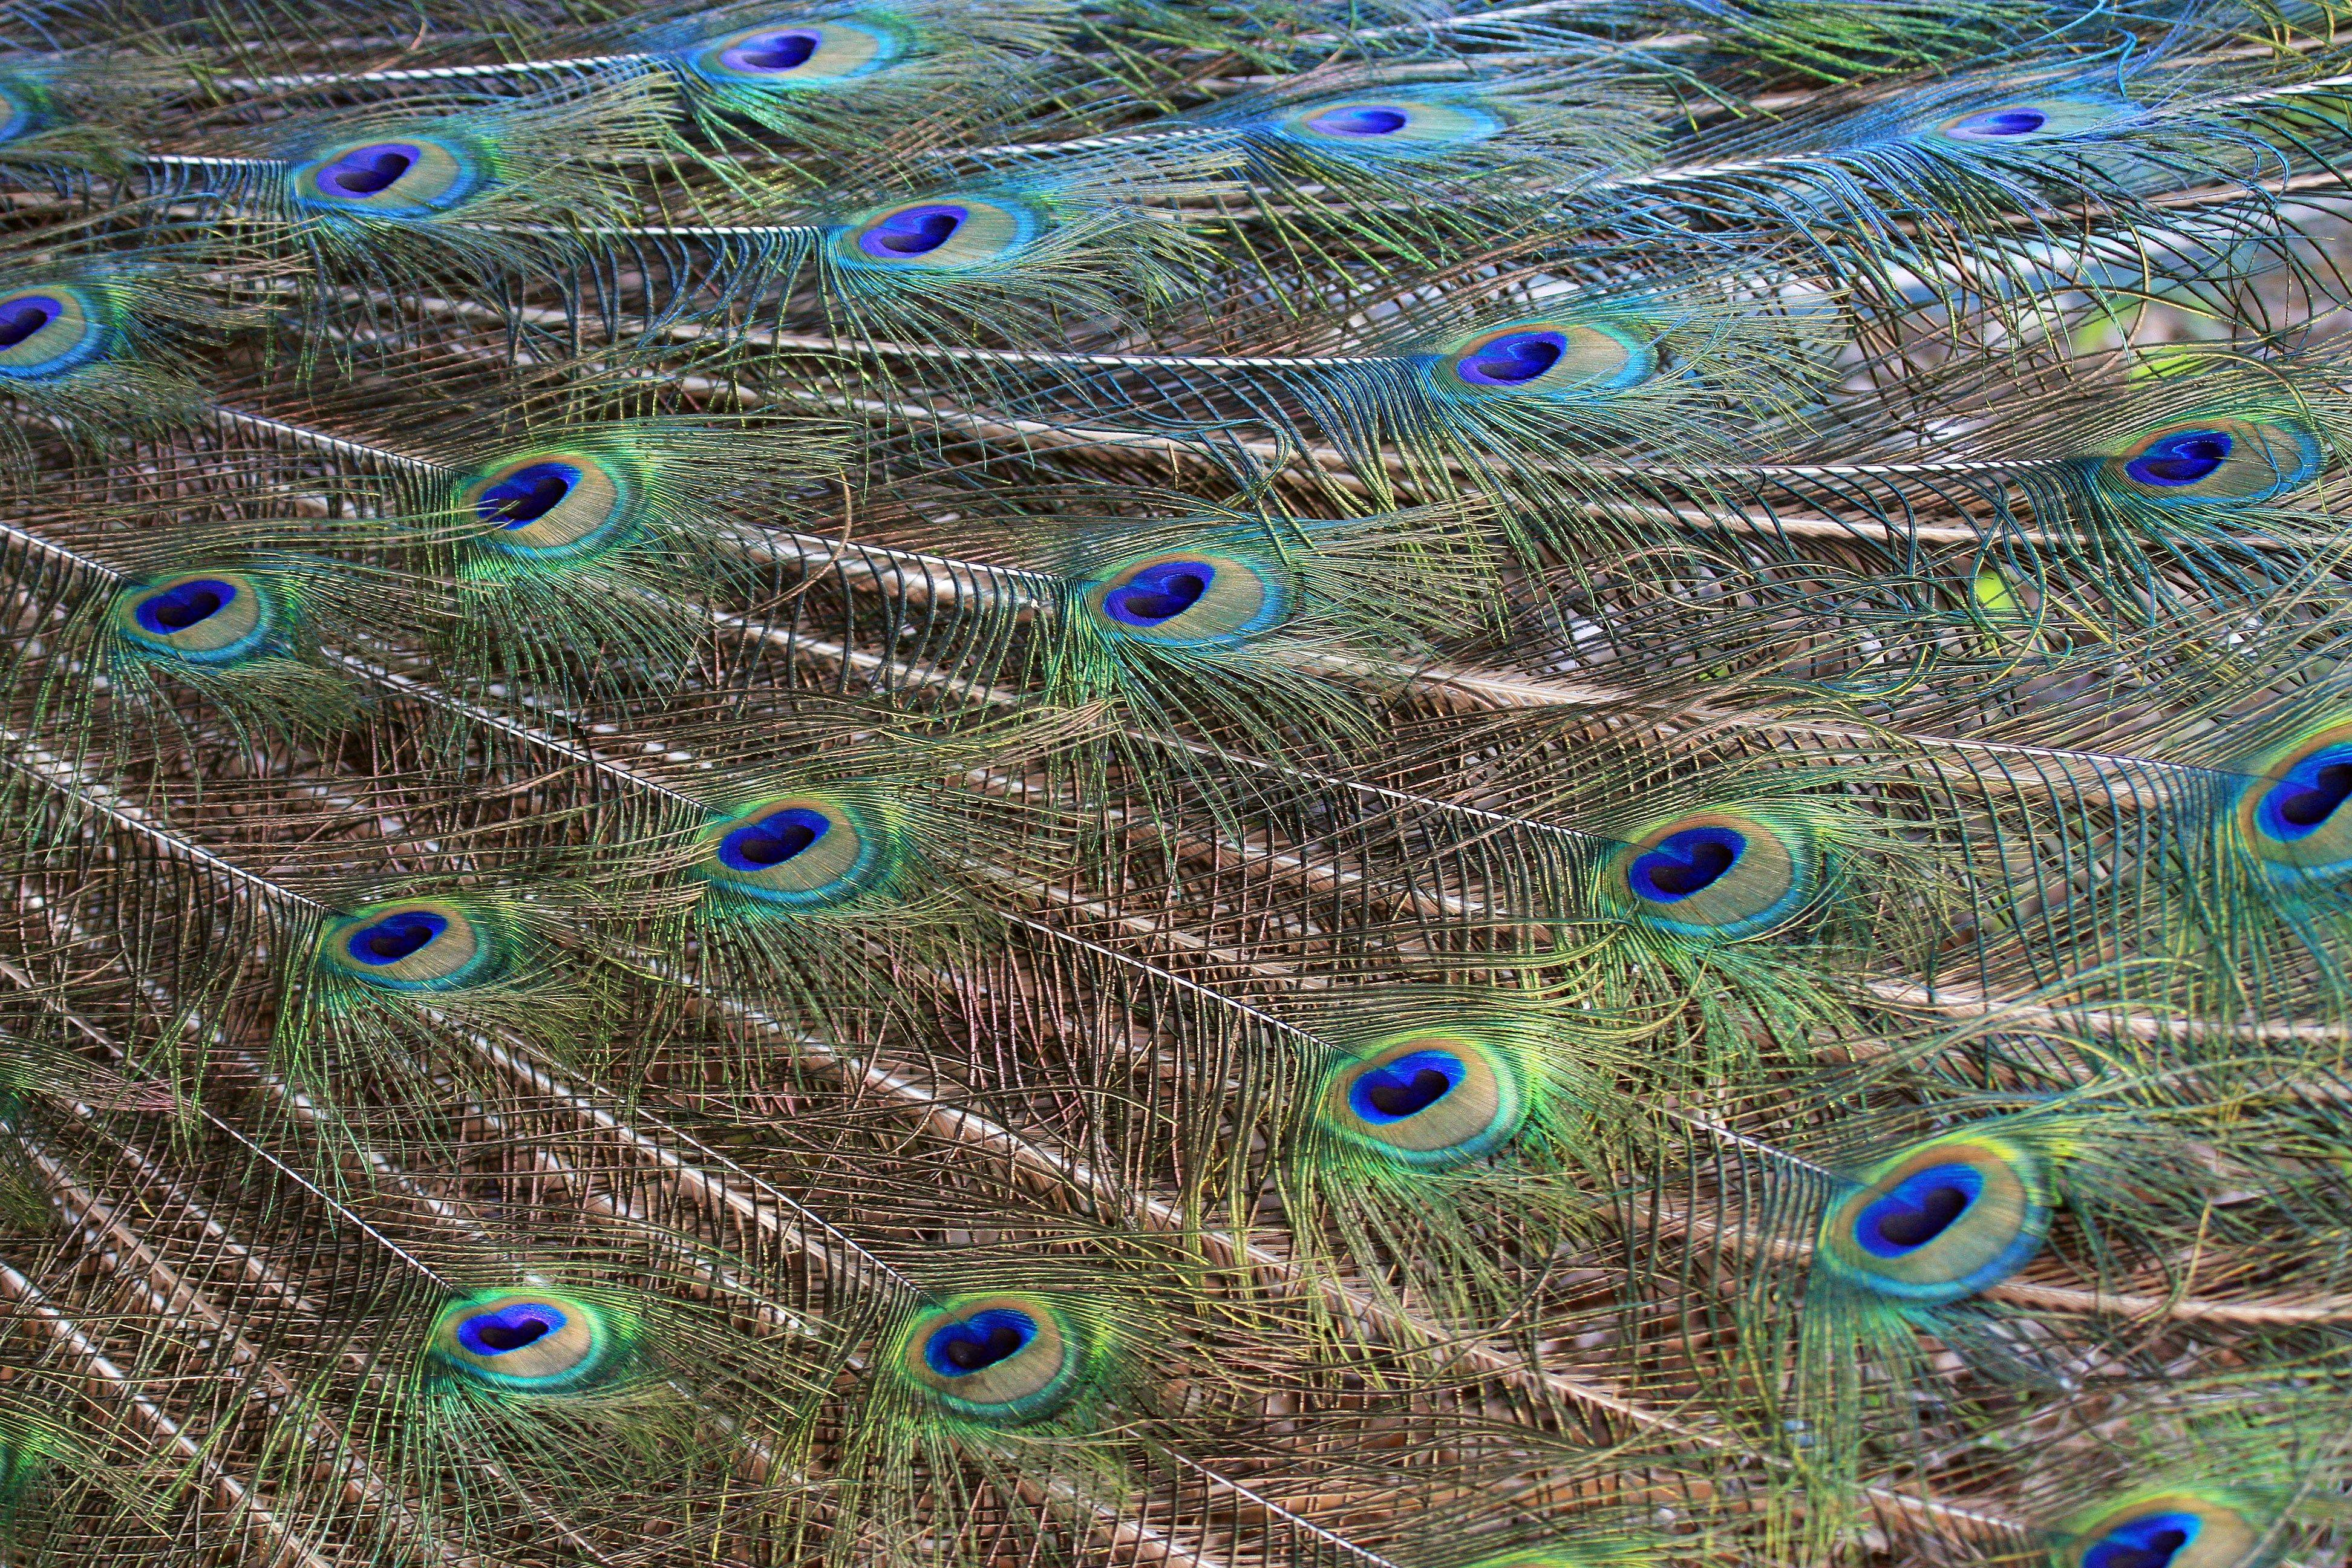 Photo by Susan Birr of CarpentersvilleAs the peacock spread its iridescent feathers, at Brookfield Zoo I took the opportunity for this close-up shot.